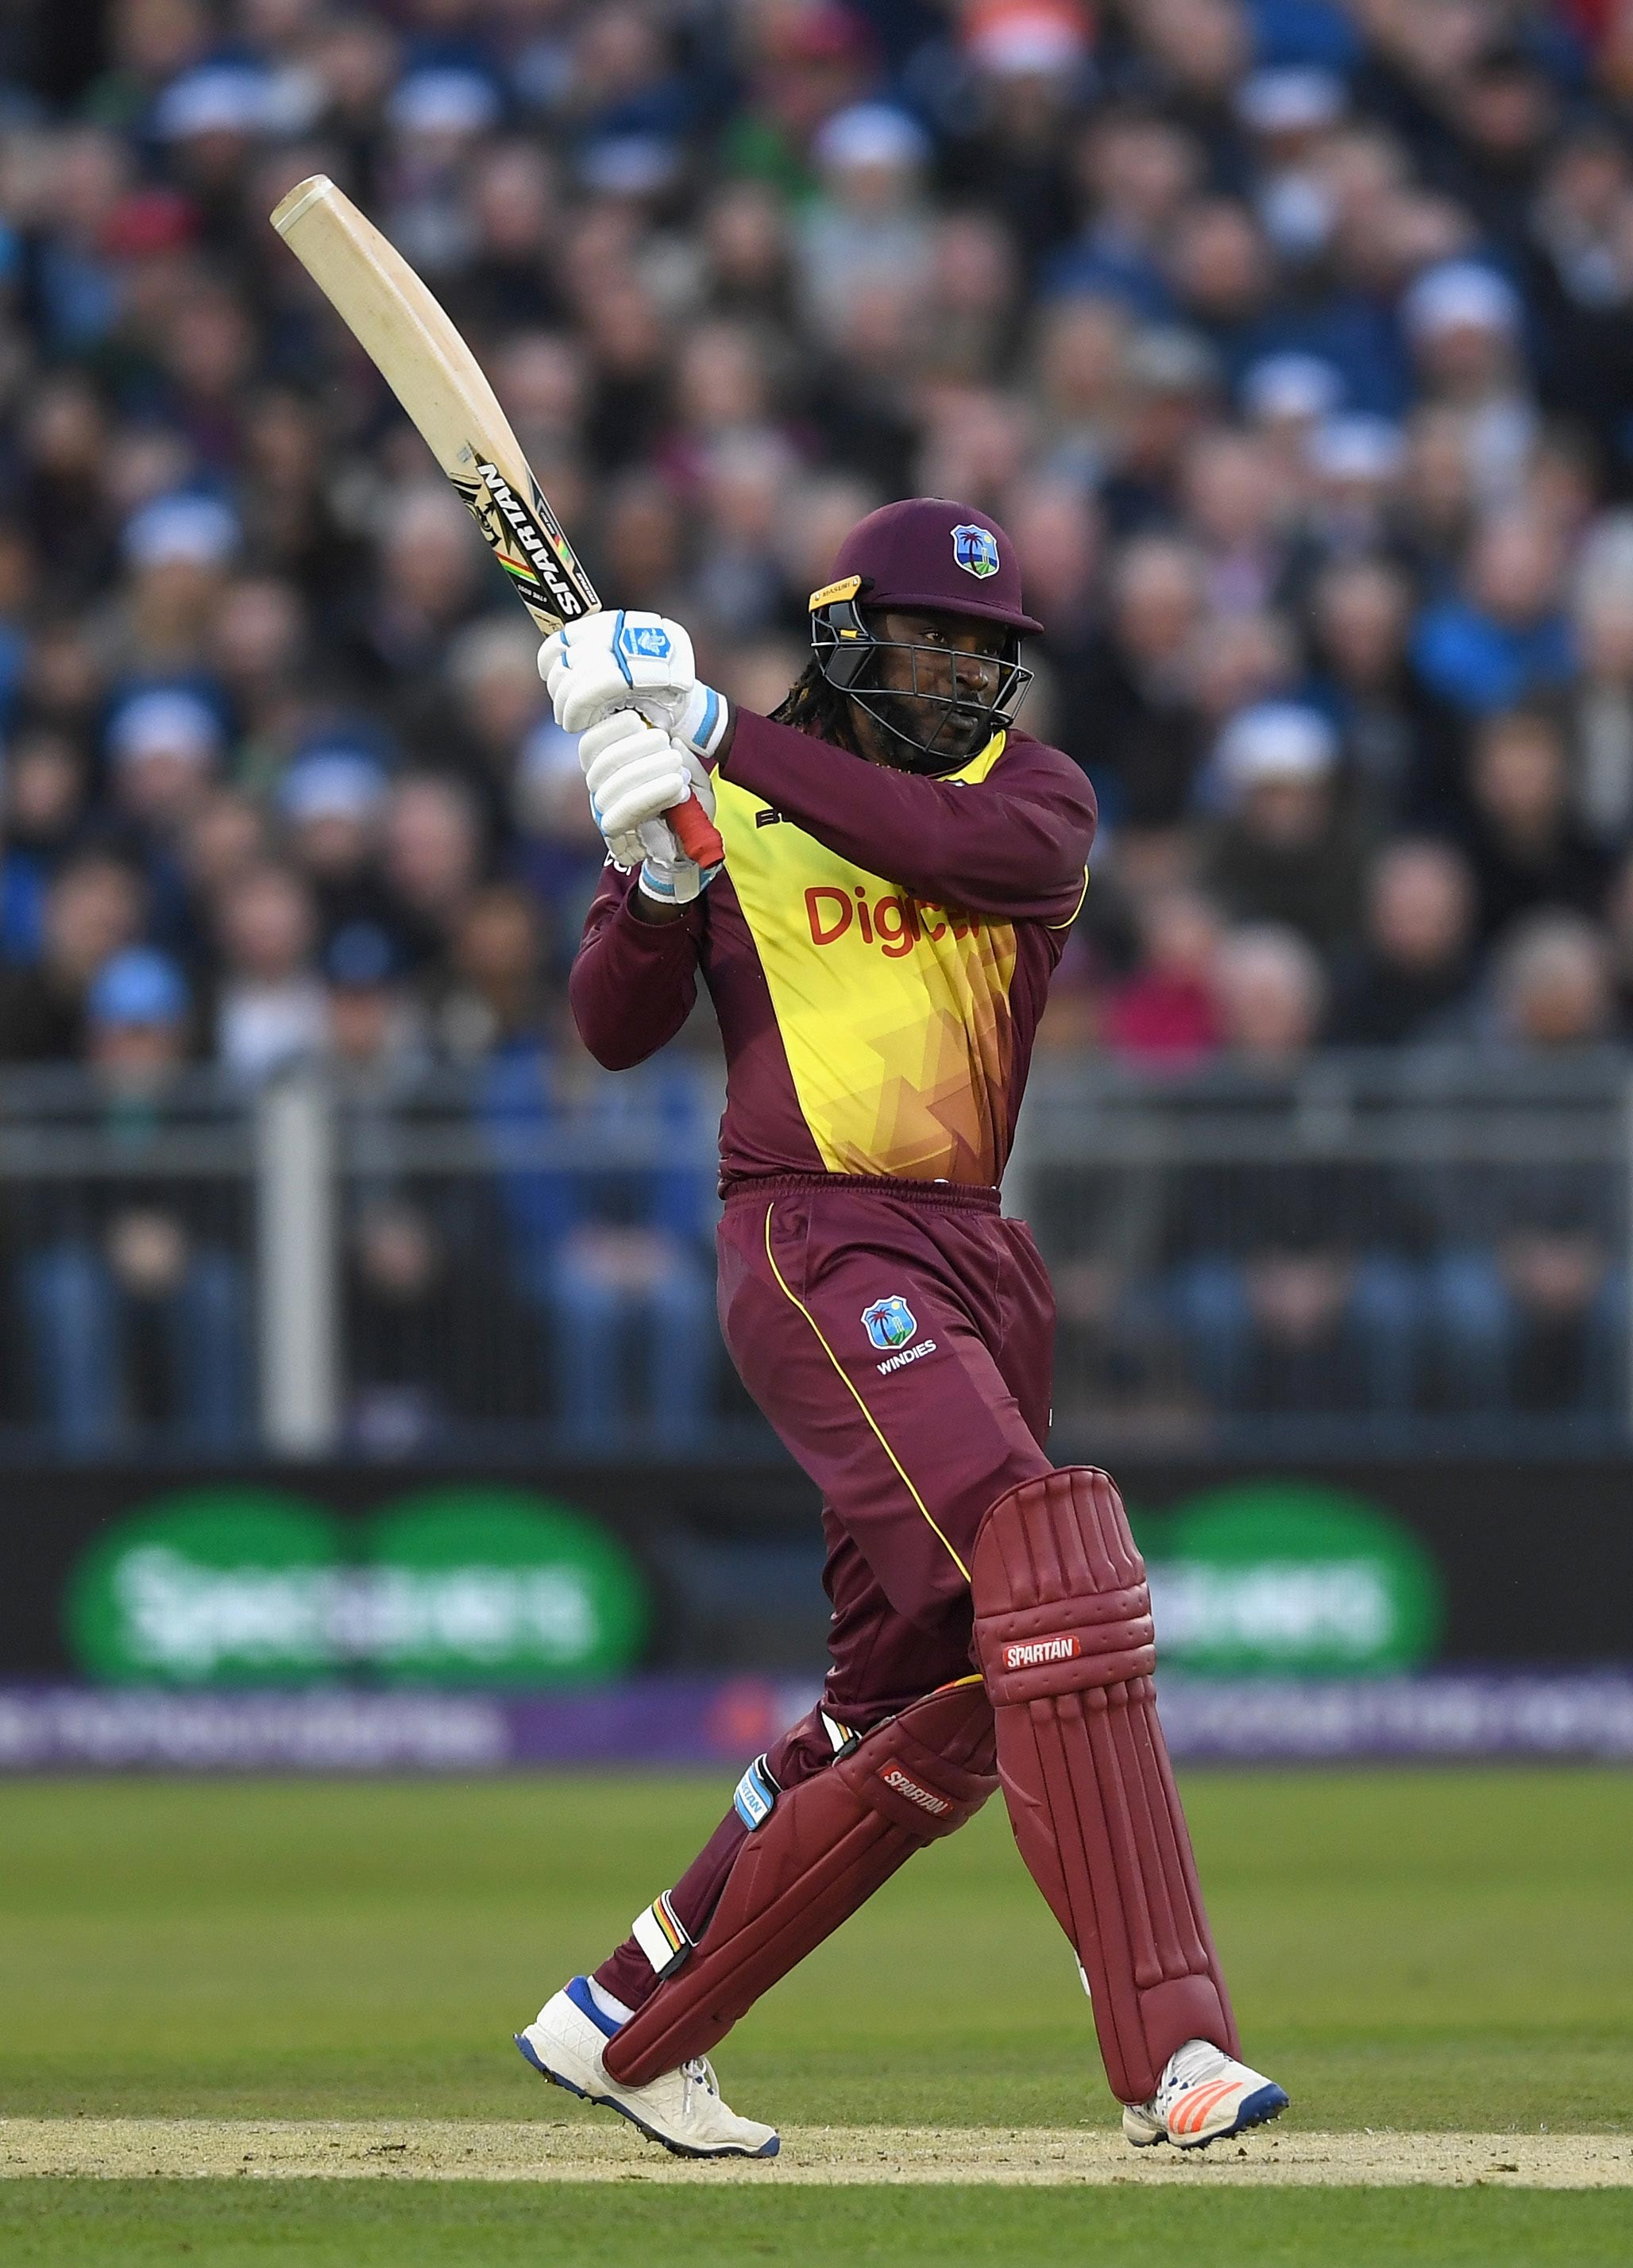 Four sixes for Gayle // Getty